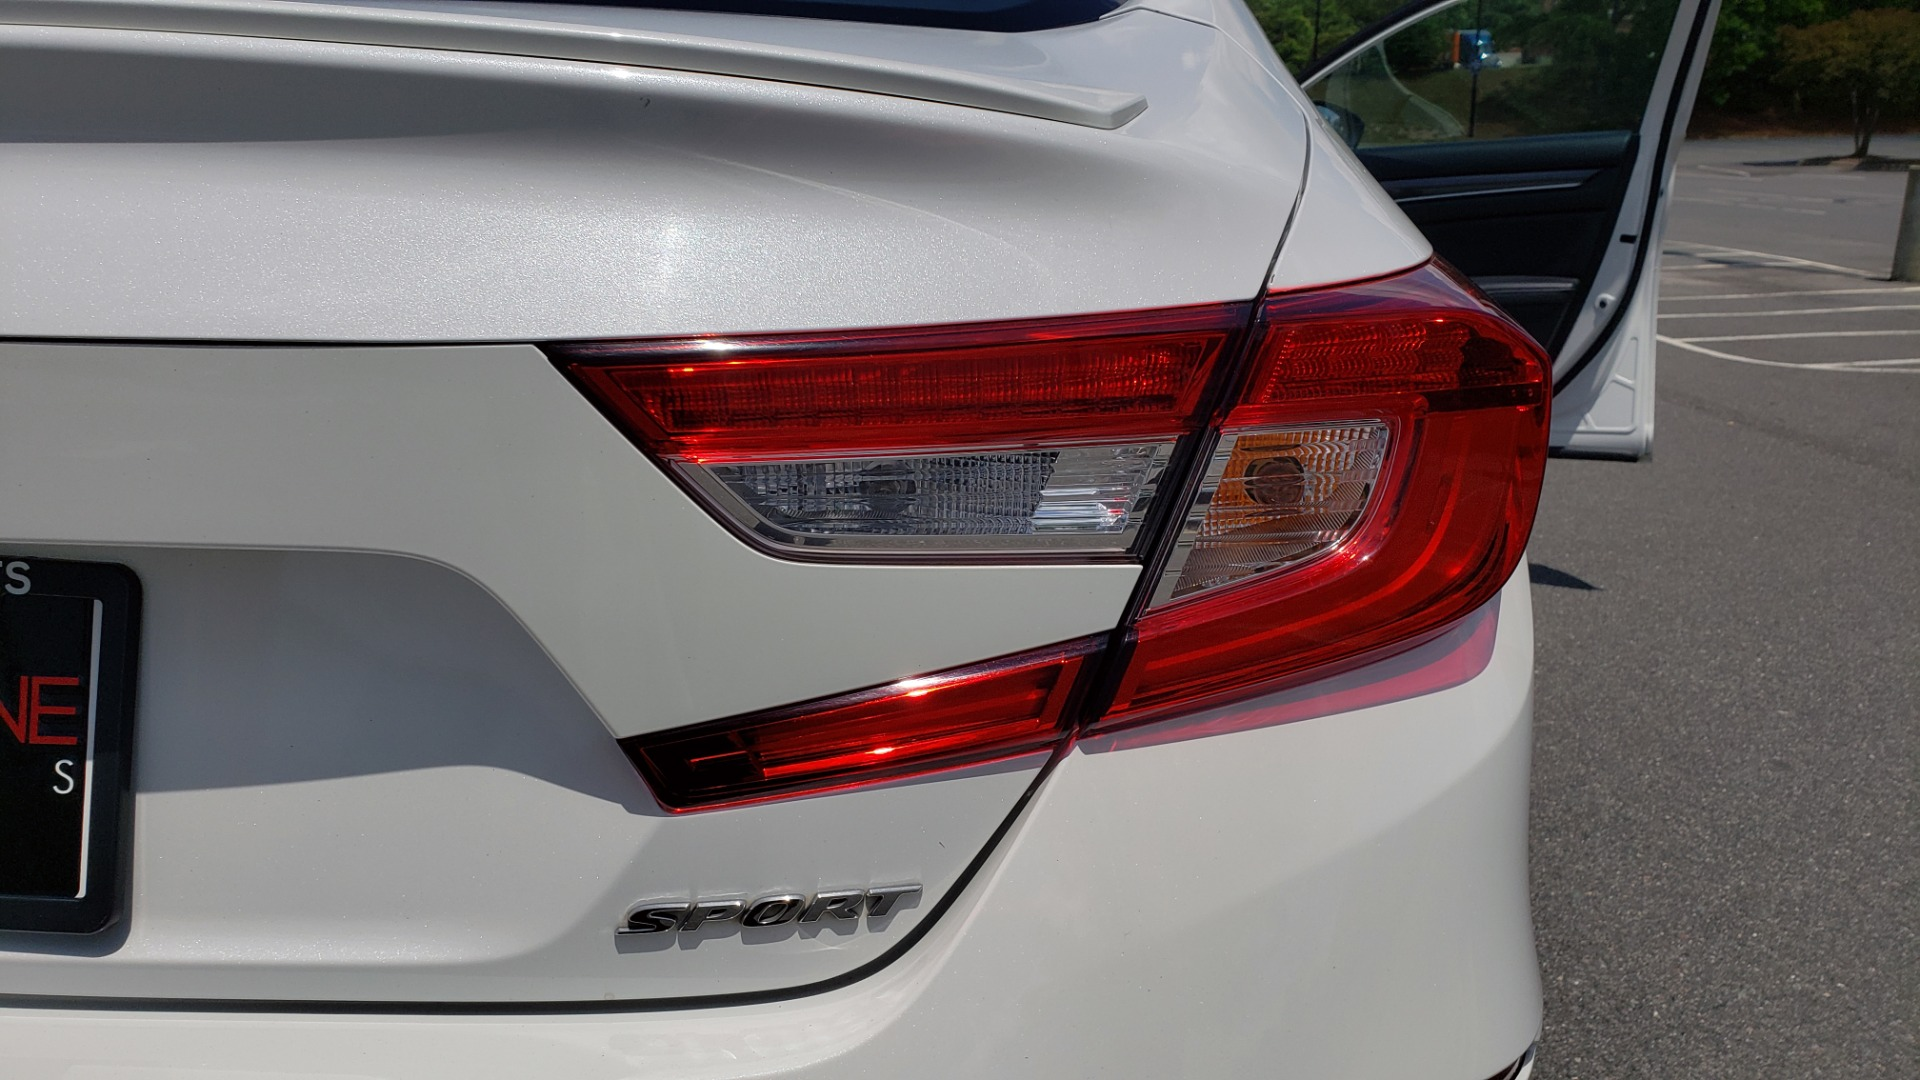 Used 2018 Honda ACCORD SEDAN SPORT 1.5T / CVT TRANS / FWD / 19IN WHEELS for sale $20,995 at Formula Imports in Charlotte NC 28227 24